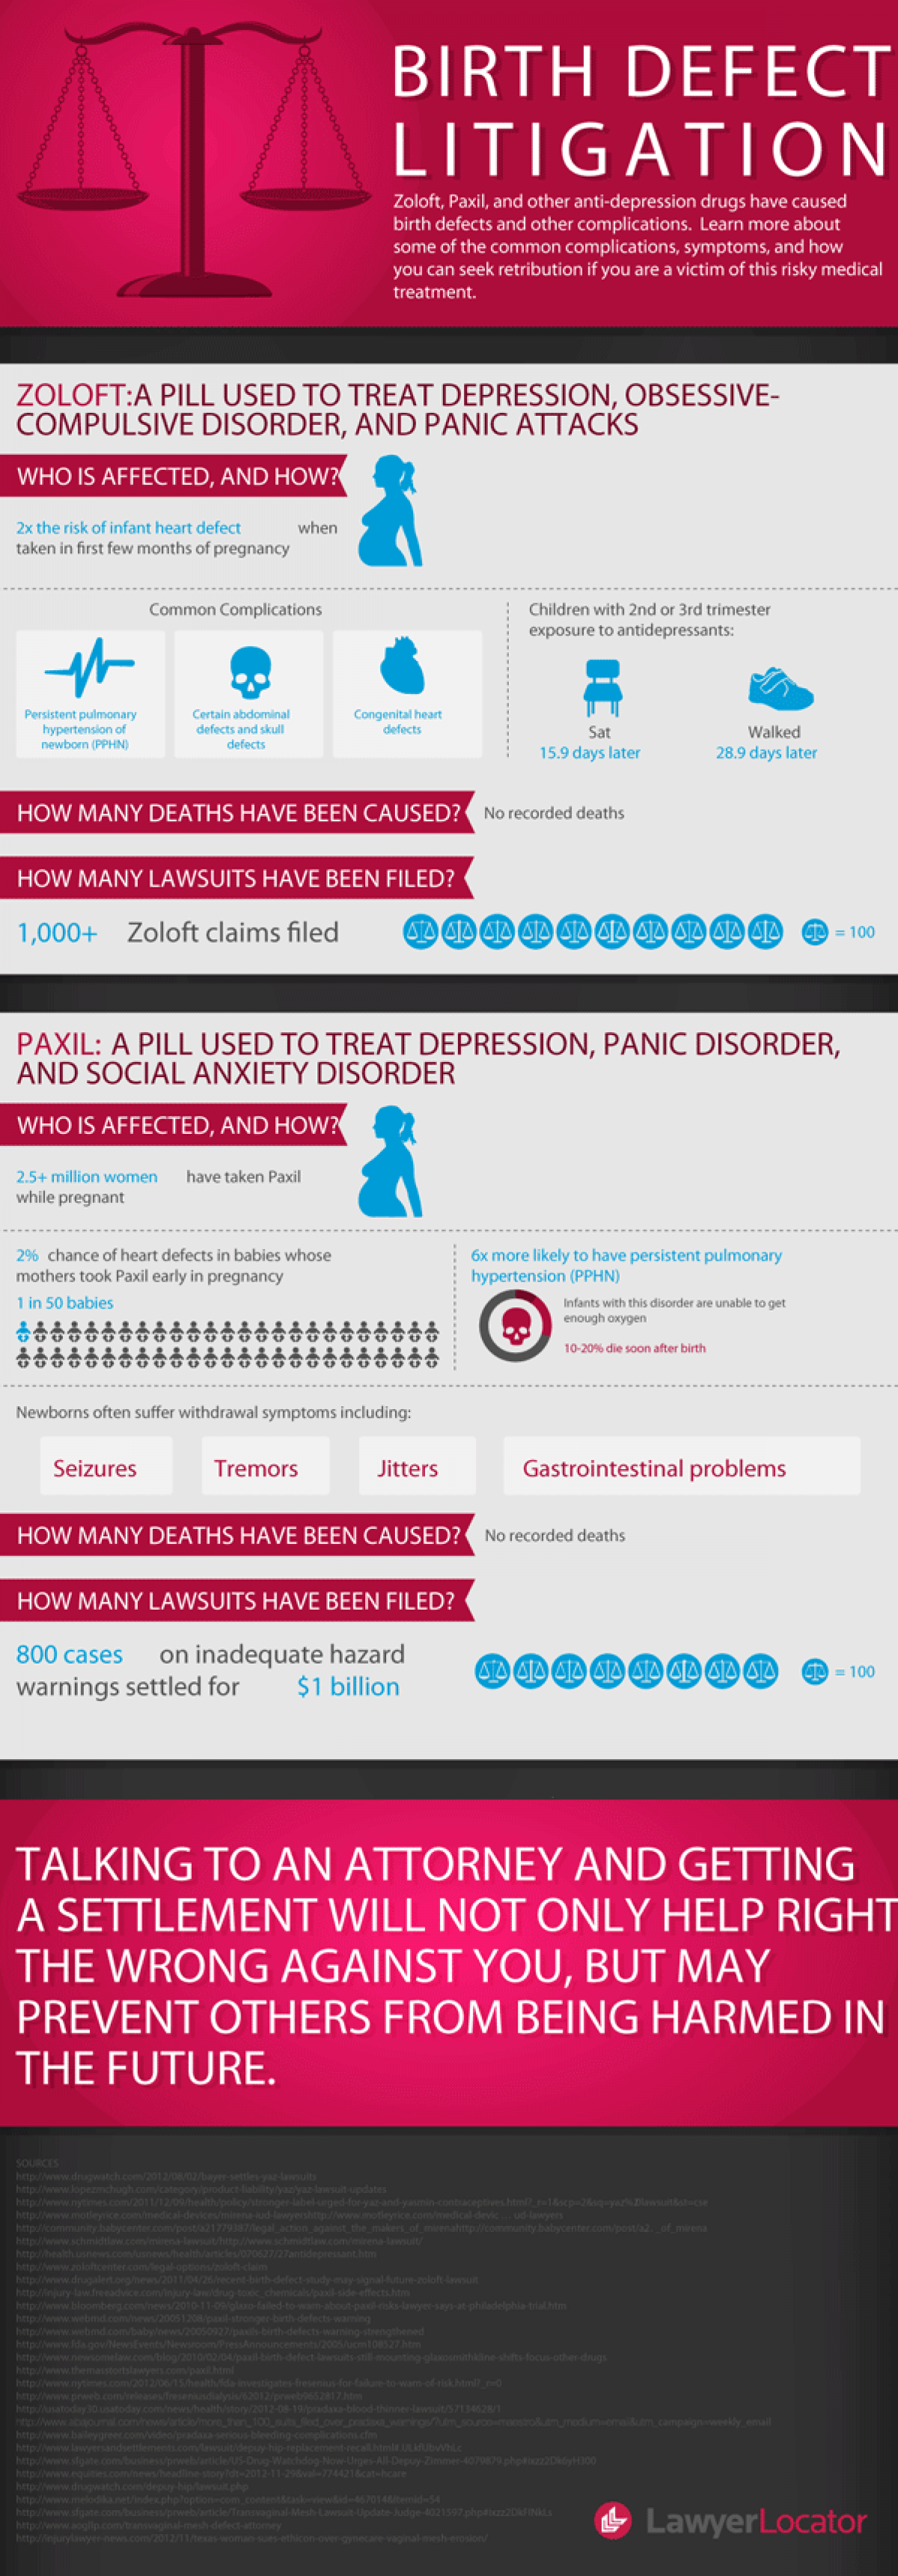 Birth Defect Litigation Infographic Infographic